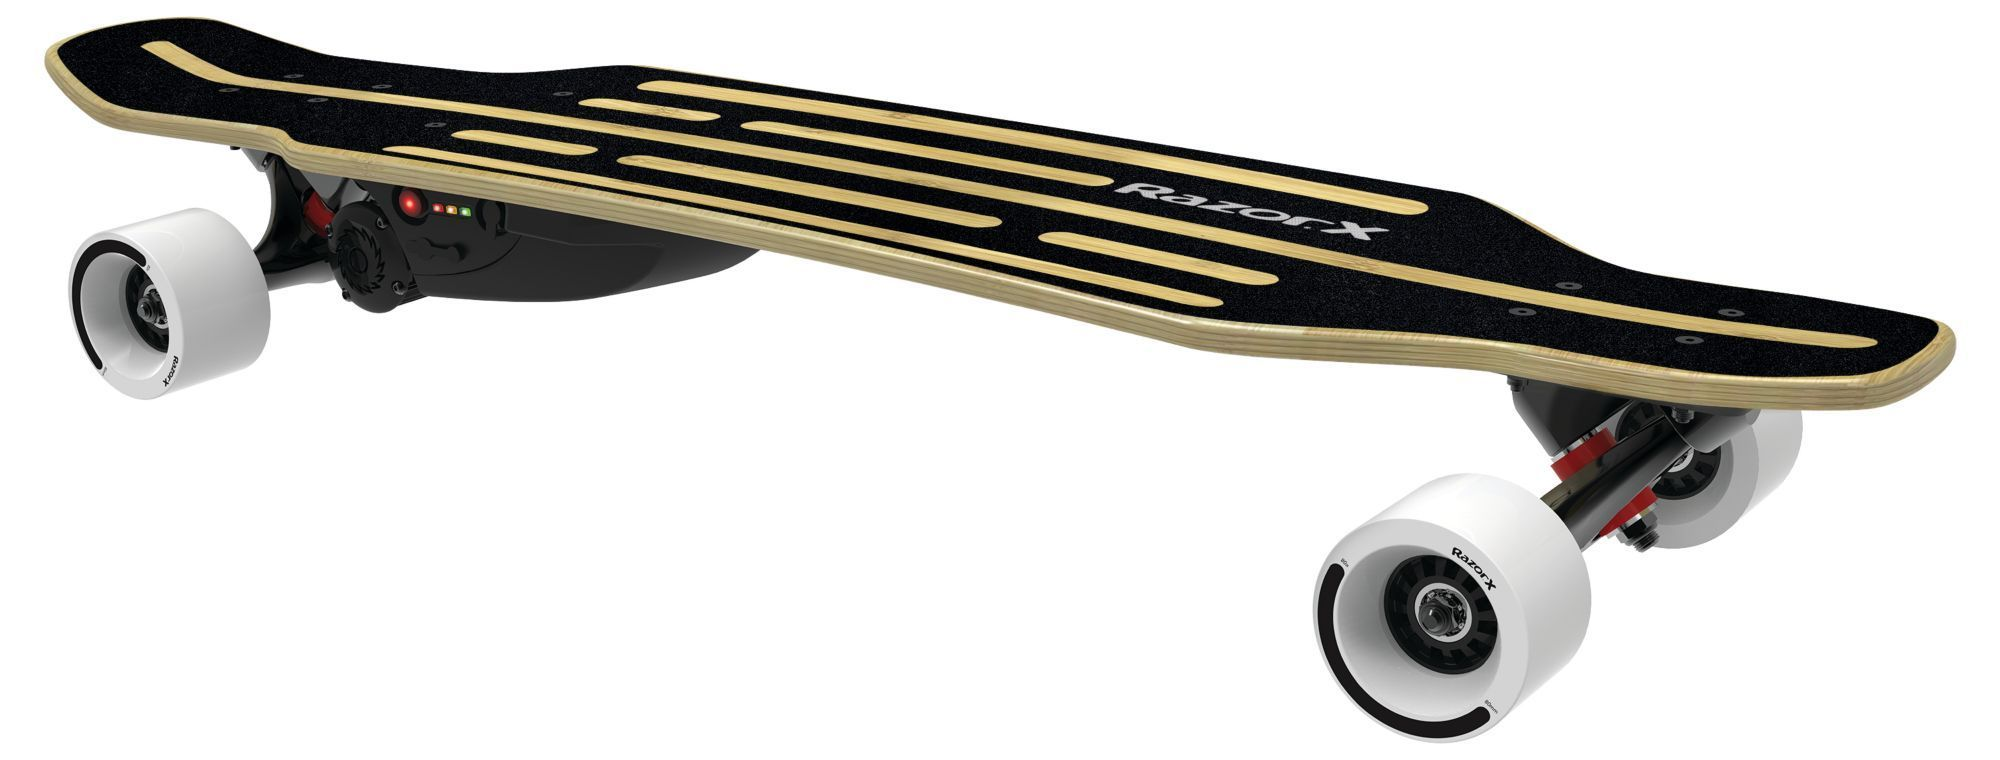 Fastest Electric Skateboard Buying Guide 2019 10bestsells Electric Skateboard Cool Skateboards Skateboard